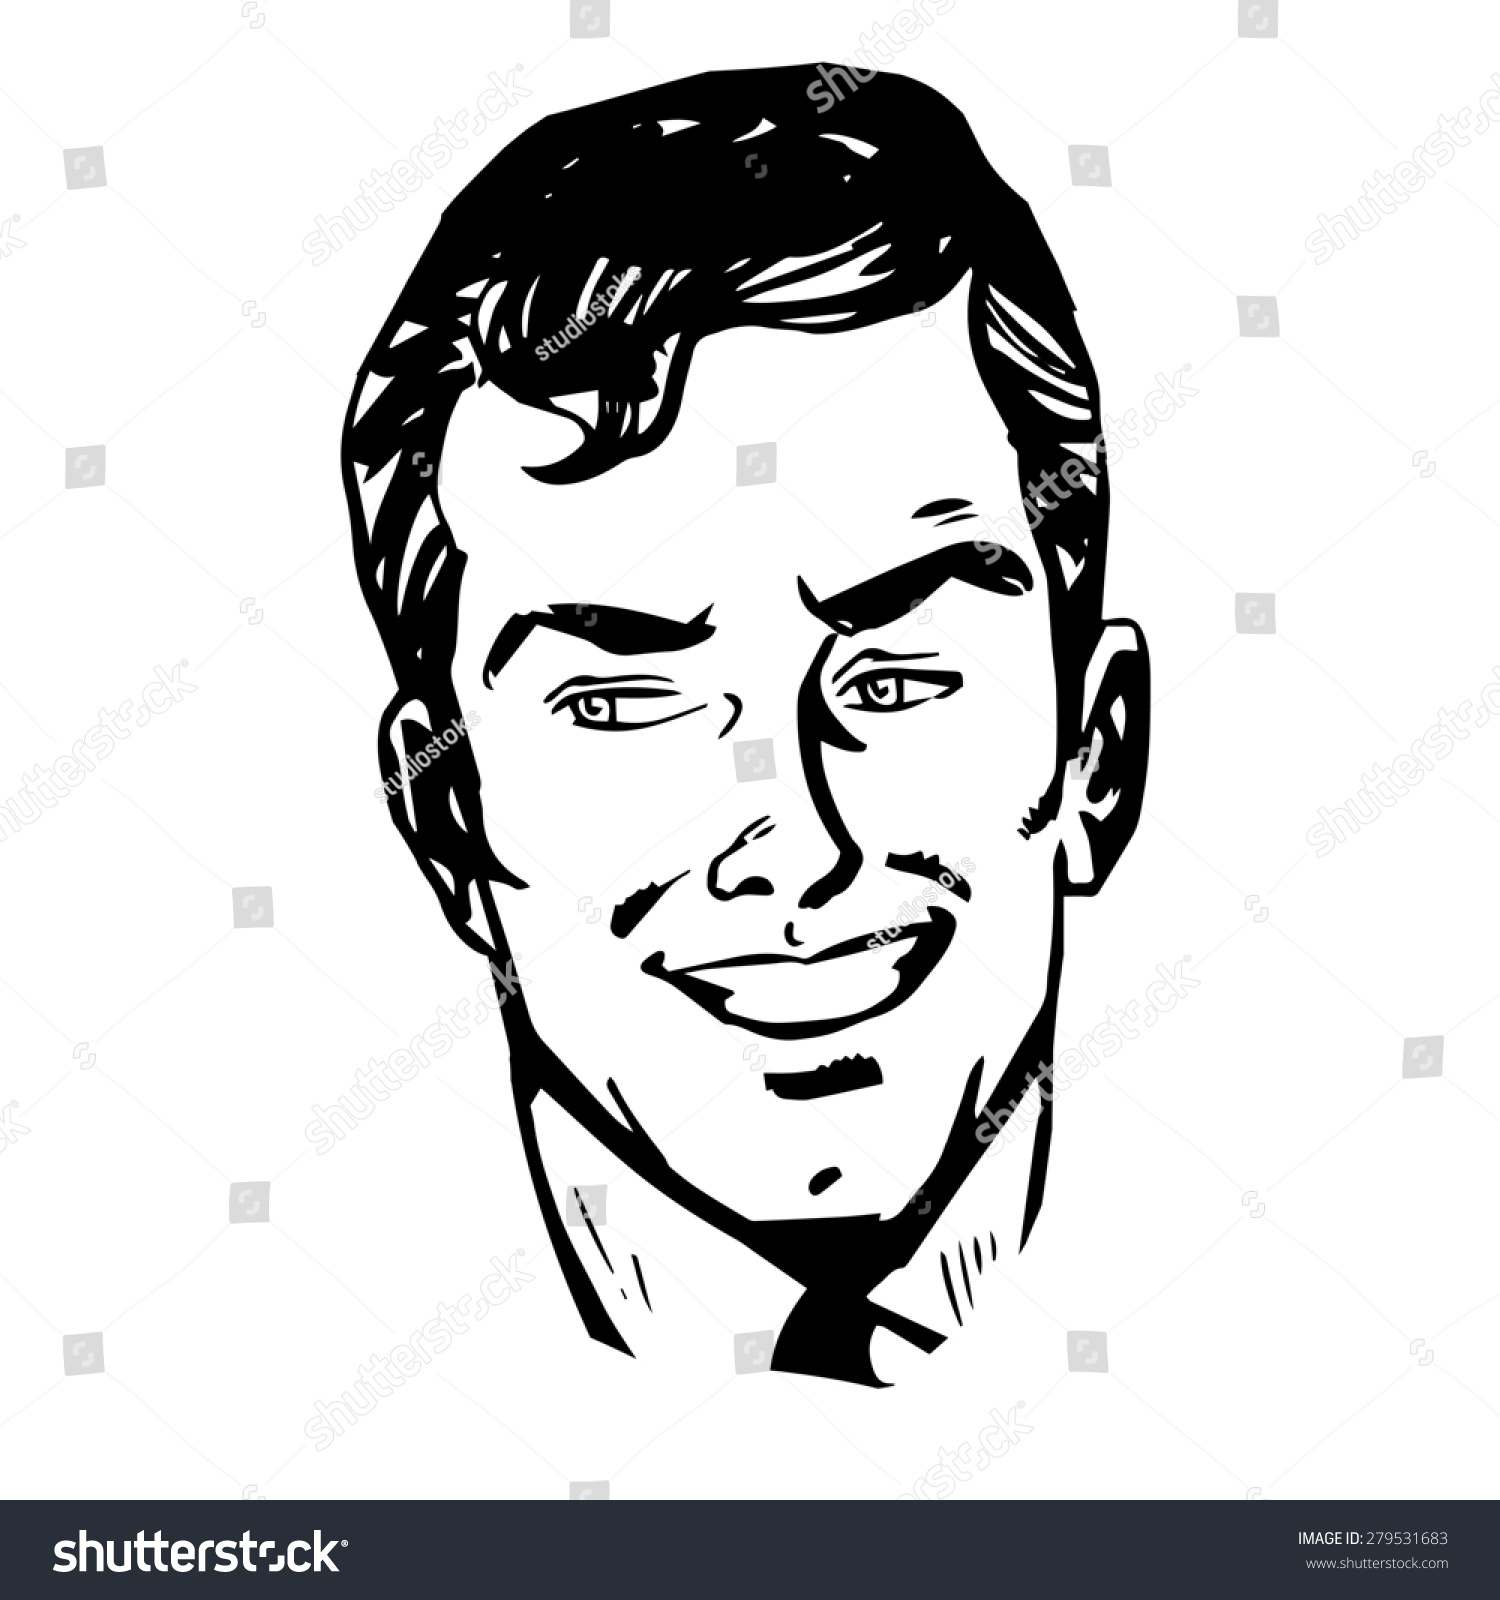 Line Drawing Graphics : Smiling man face retro line art stock vector